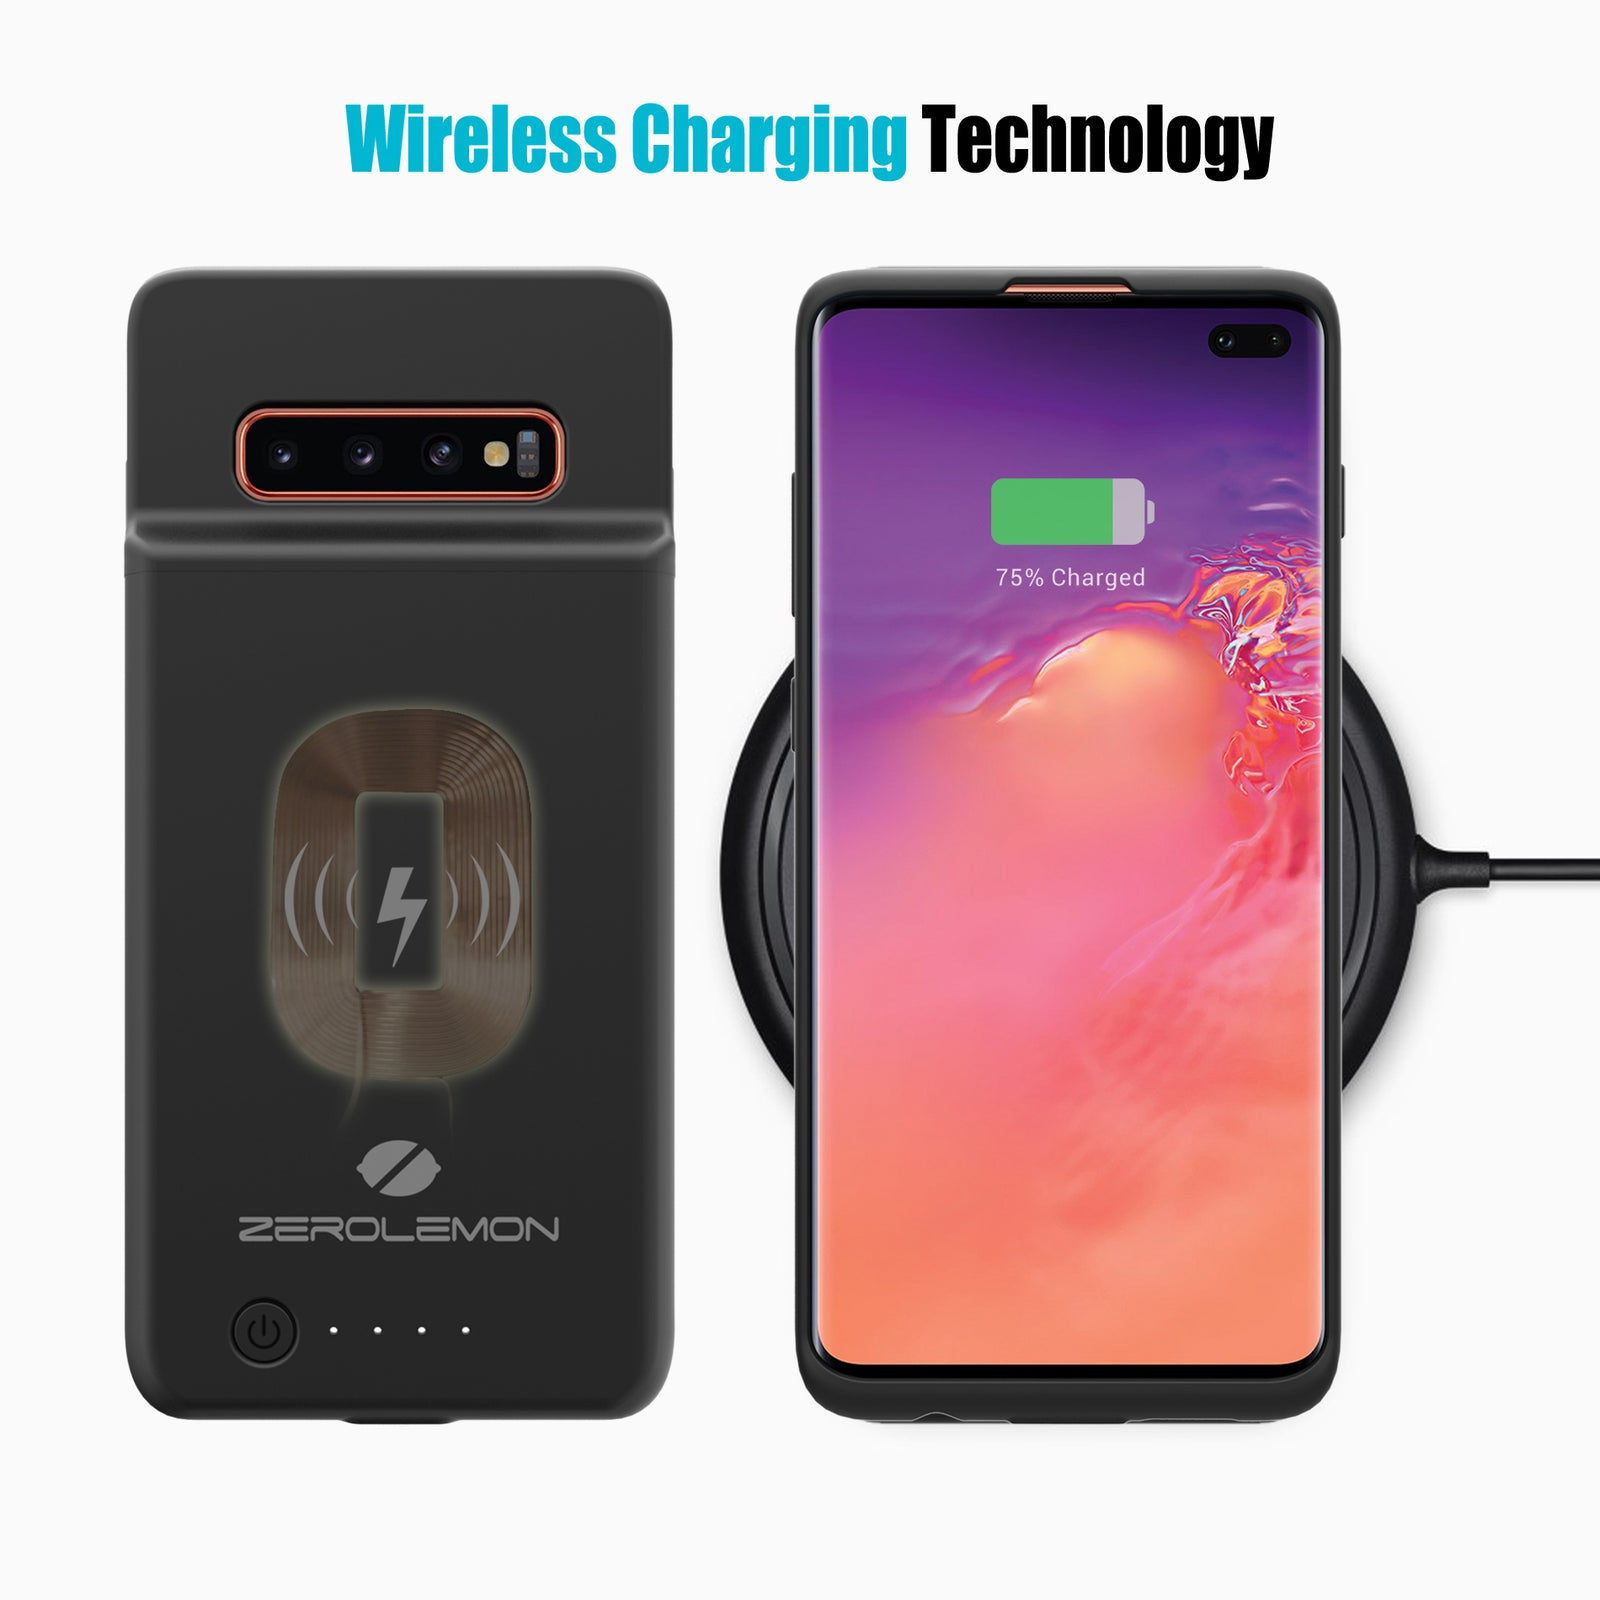 Galaxy S10 Plus Wireless Charging Battery Case 5000mAh